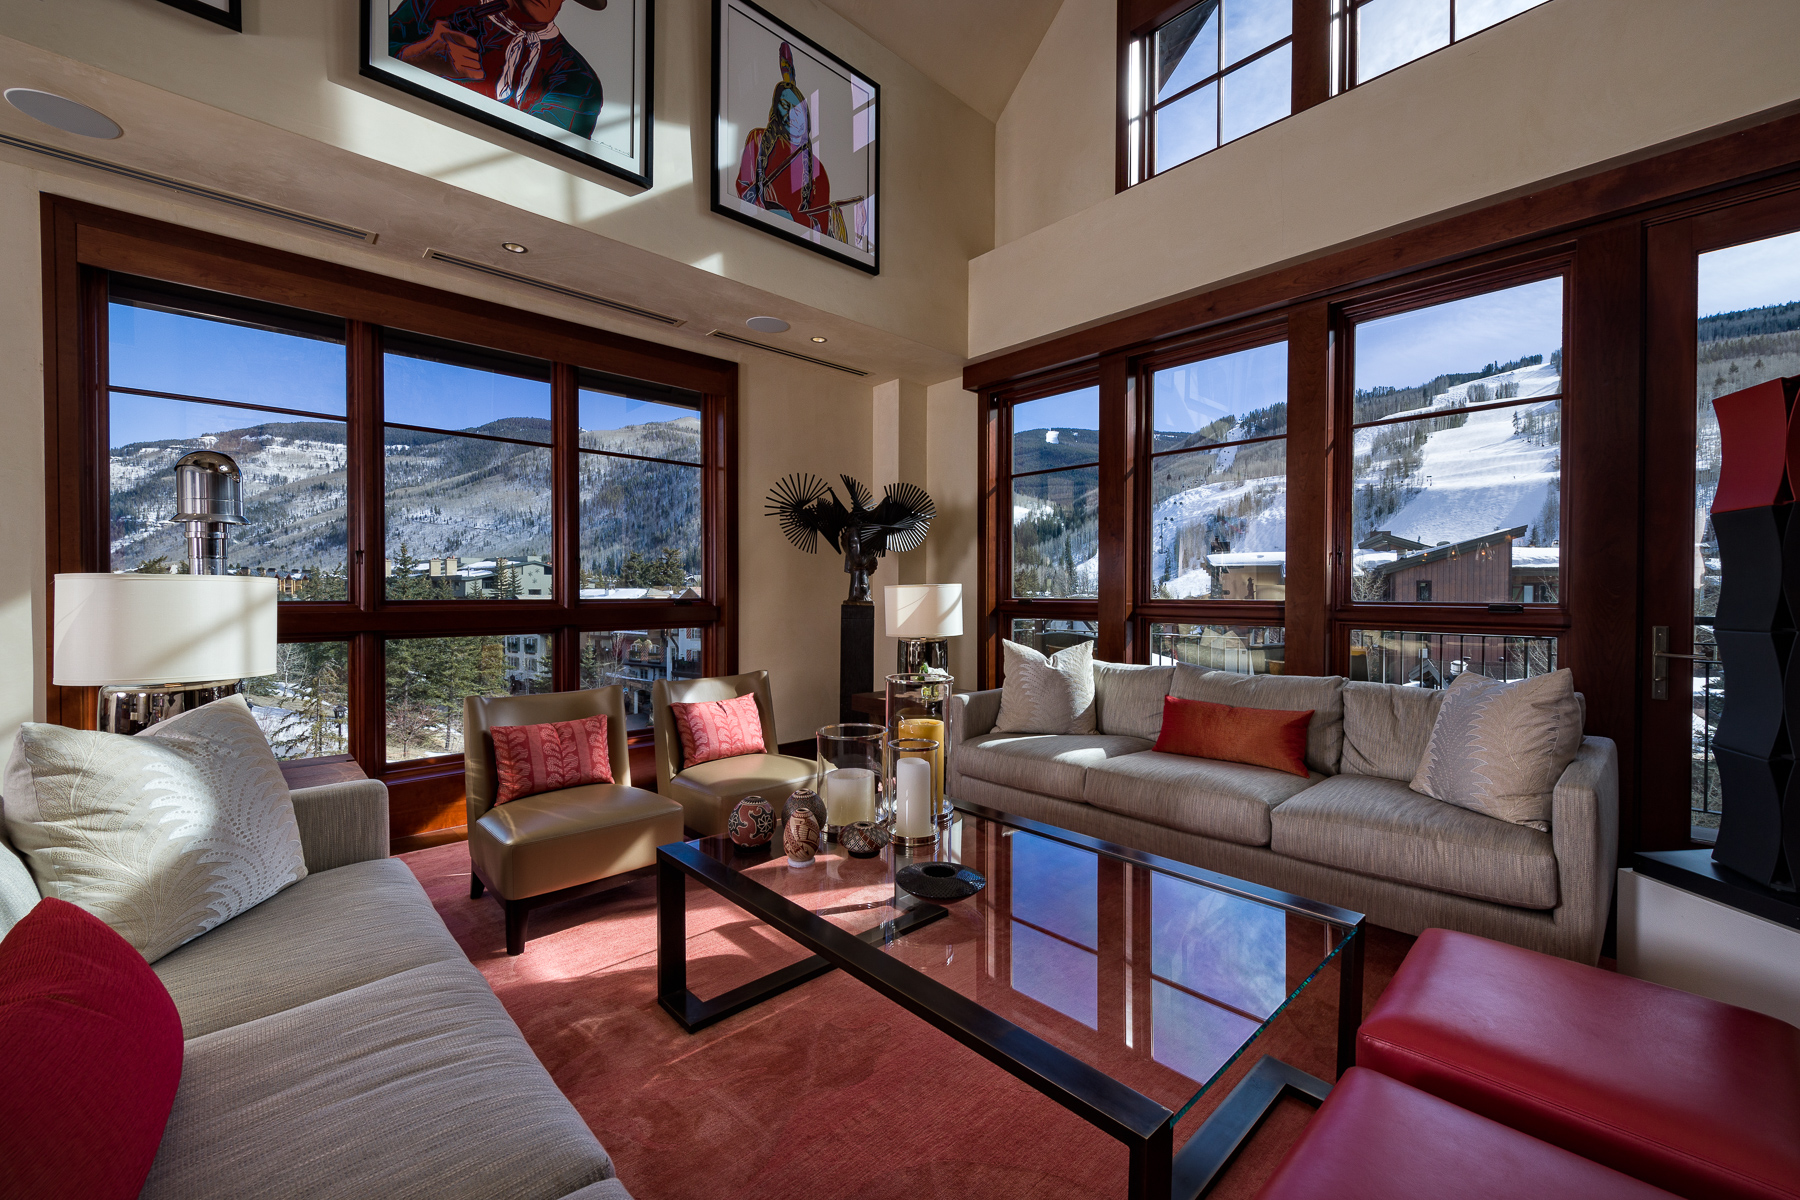 Condomínio para Venda às Magnificent Solaris Penthouse 141 E. Meadow Drive #PHHE Vail, Colorado, 81657 Estados Unidos